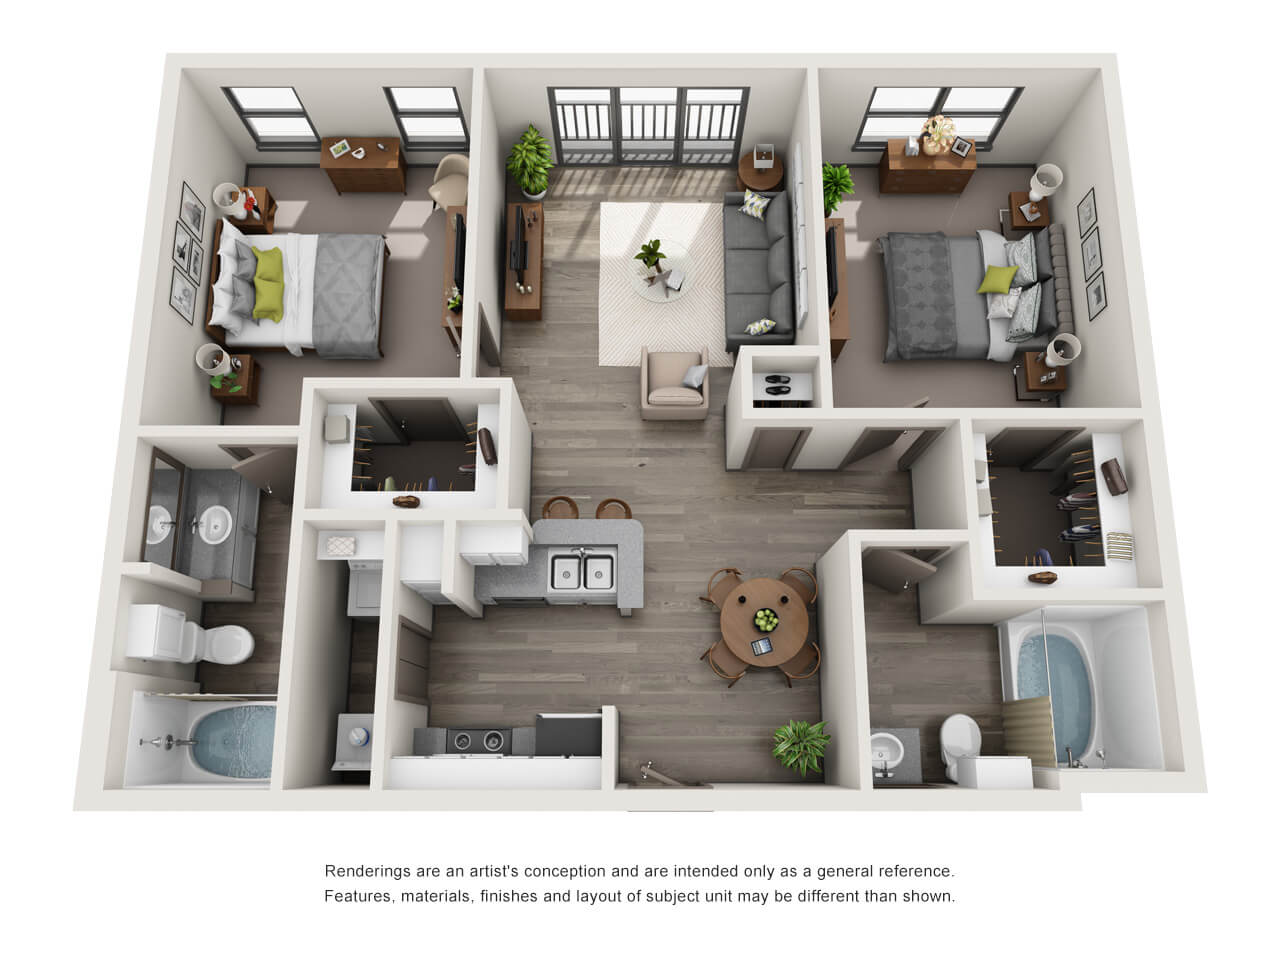 carter haston 3d floor plans - Apartment Website Design